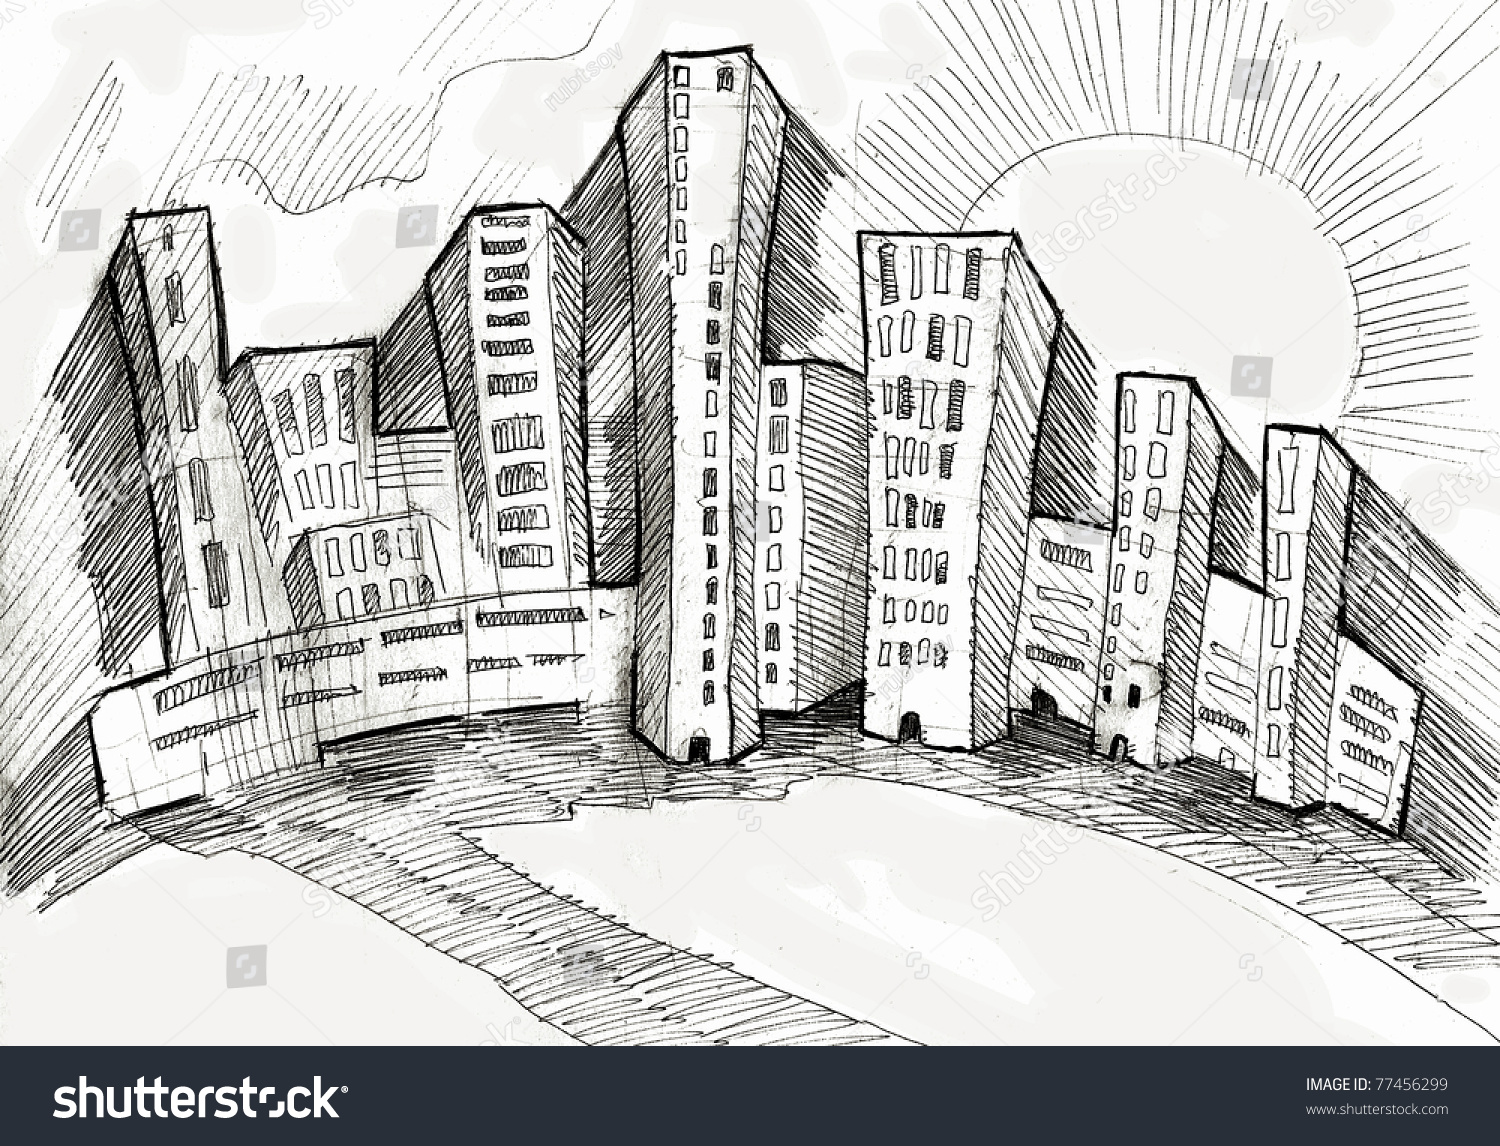 Solar city stock illustration 77456299 shutterstock solar city buycottarizona